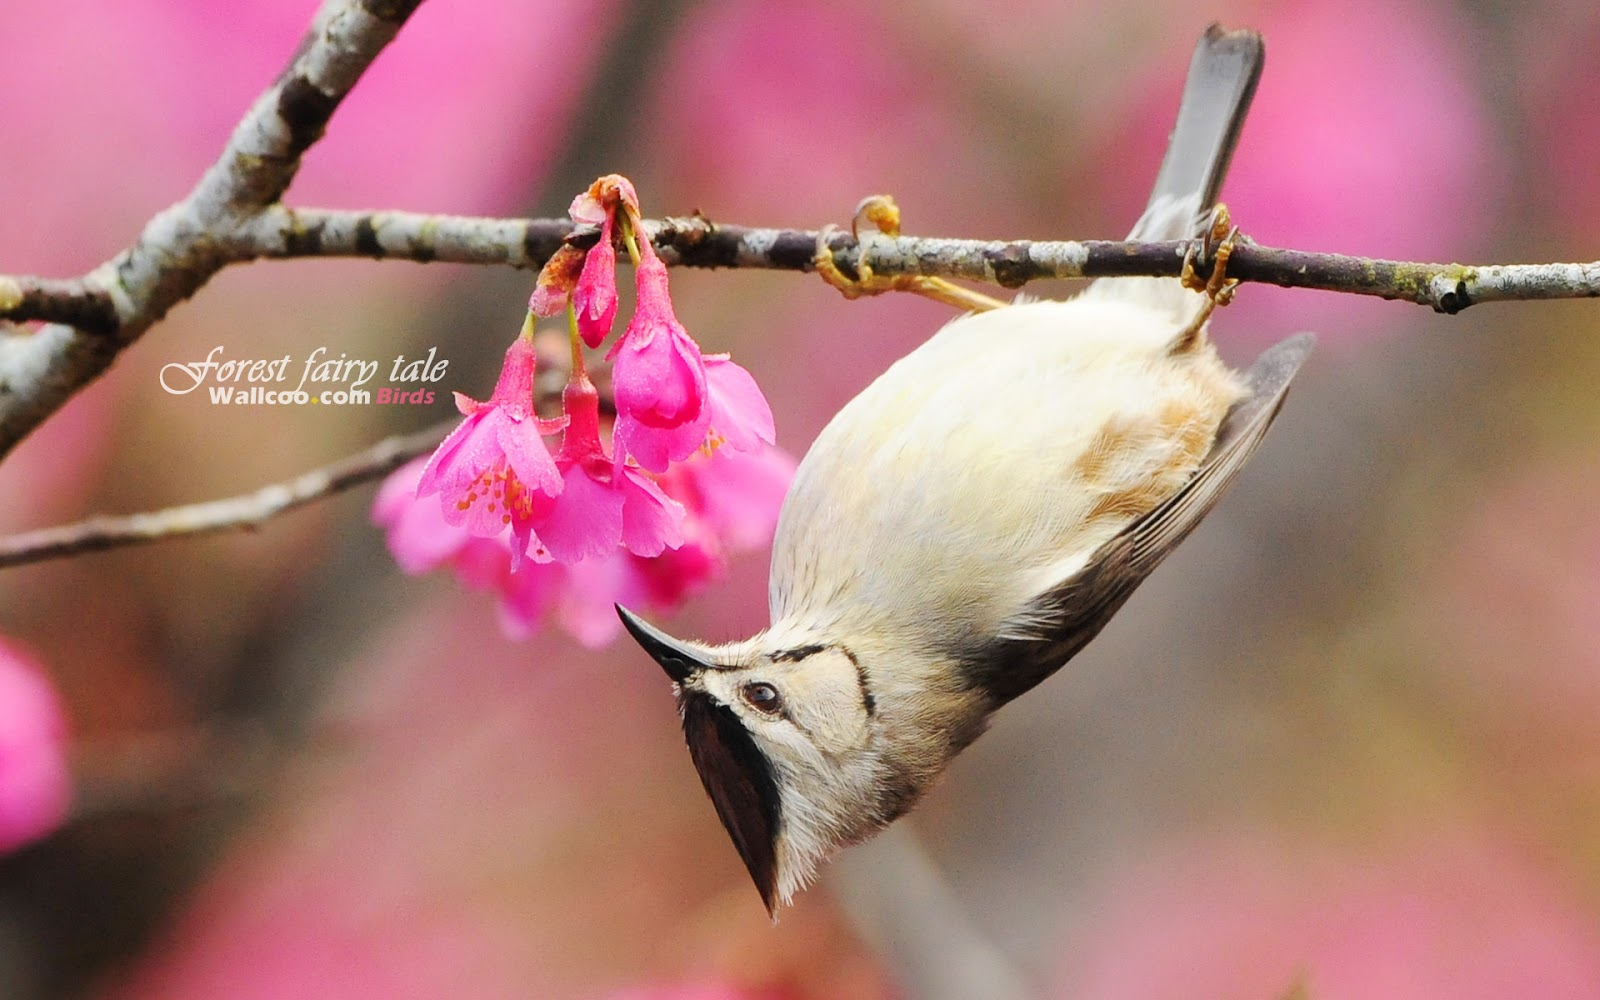 Bird and Pink Flower wallpaper Download Cute Bird and Pink Flower 1600x1000